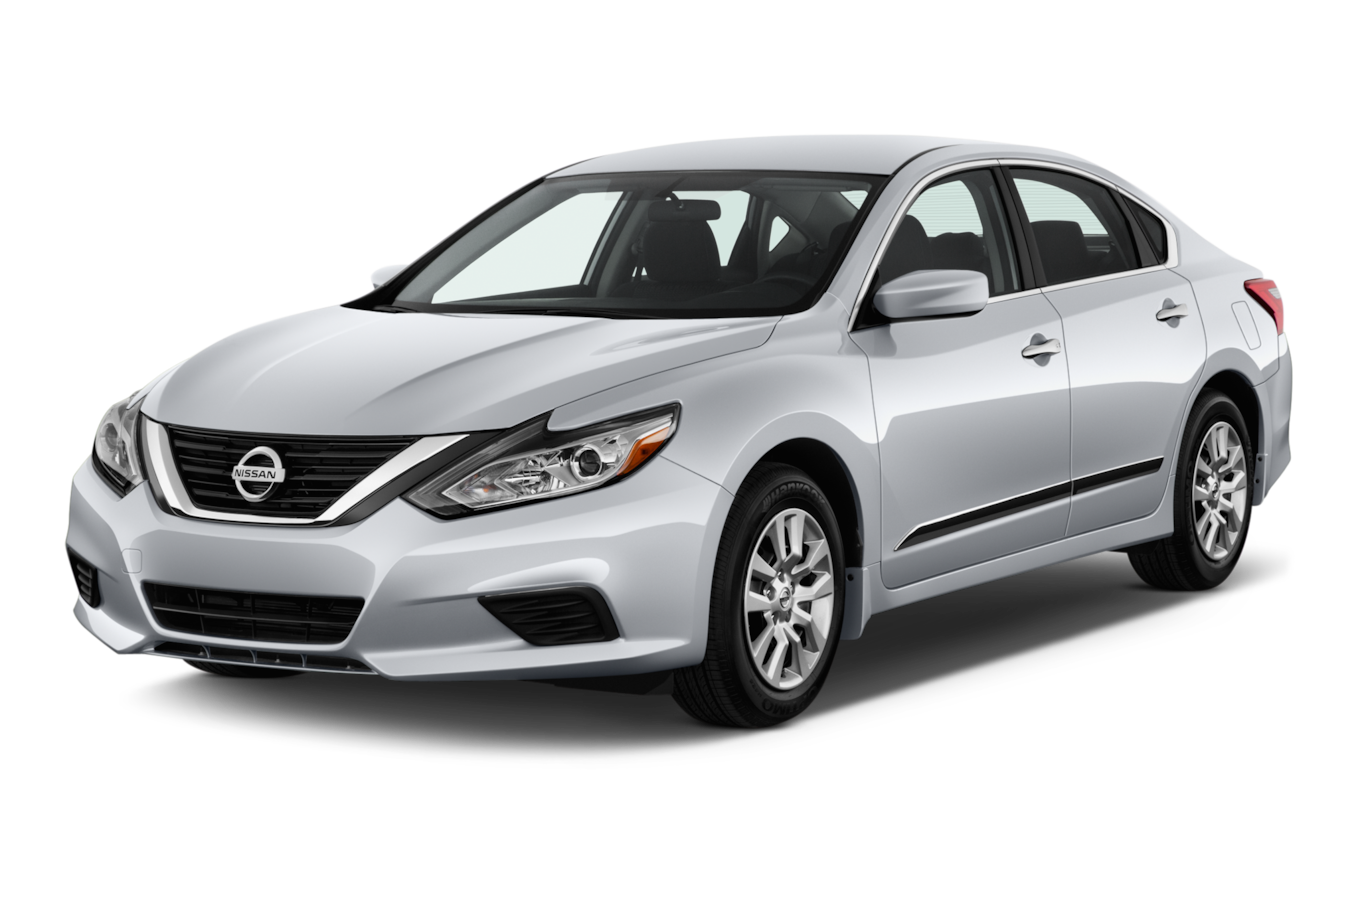 36 The Best 2017 Nissan Altima Overview